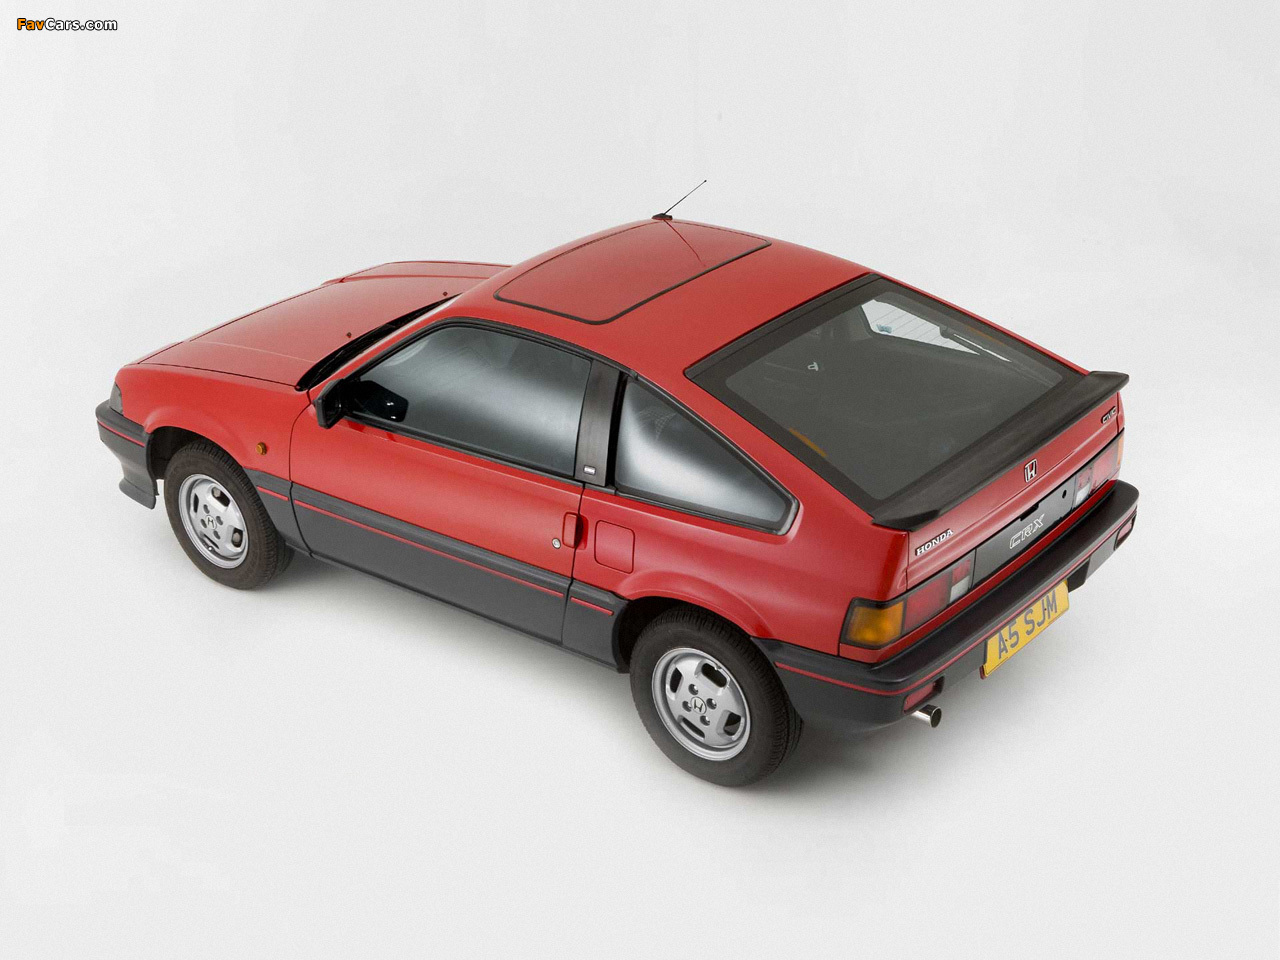 hight resolution of honda civic crx uk spec 1984 87 wallpapers 1280 x 960